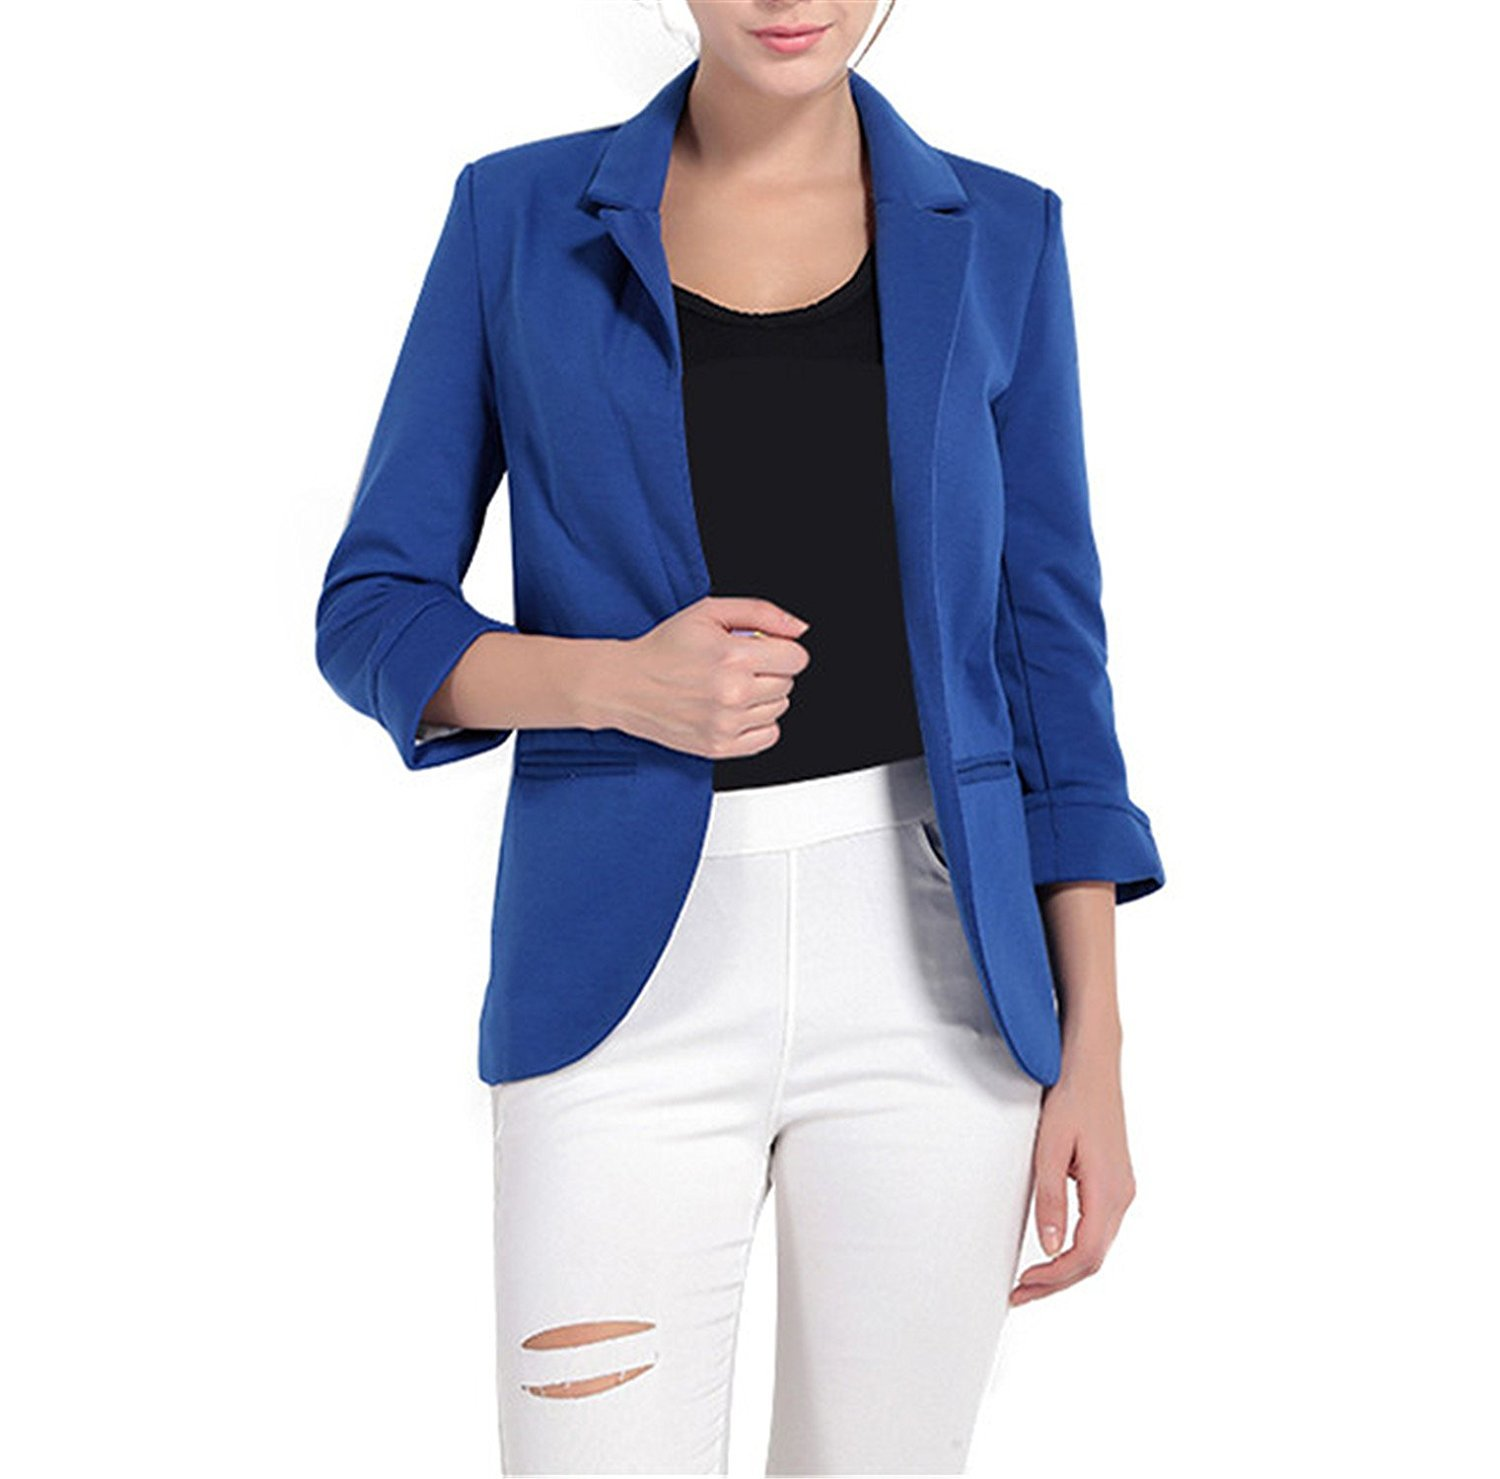 Toping Fine Blazer 3/4 Sleeve Workwear White Blazer Jackets Casual Blue Notched Blazer Outwear Overcoat BlackXX-Large by Toping Fine wool-outerwear-coats (Image #2)